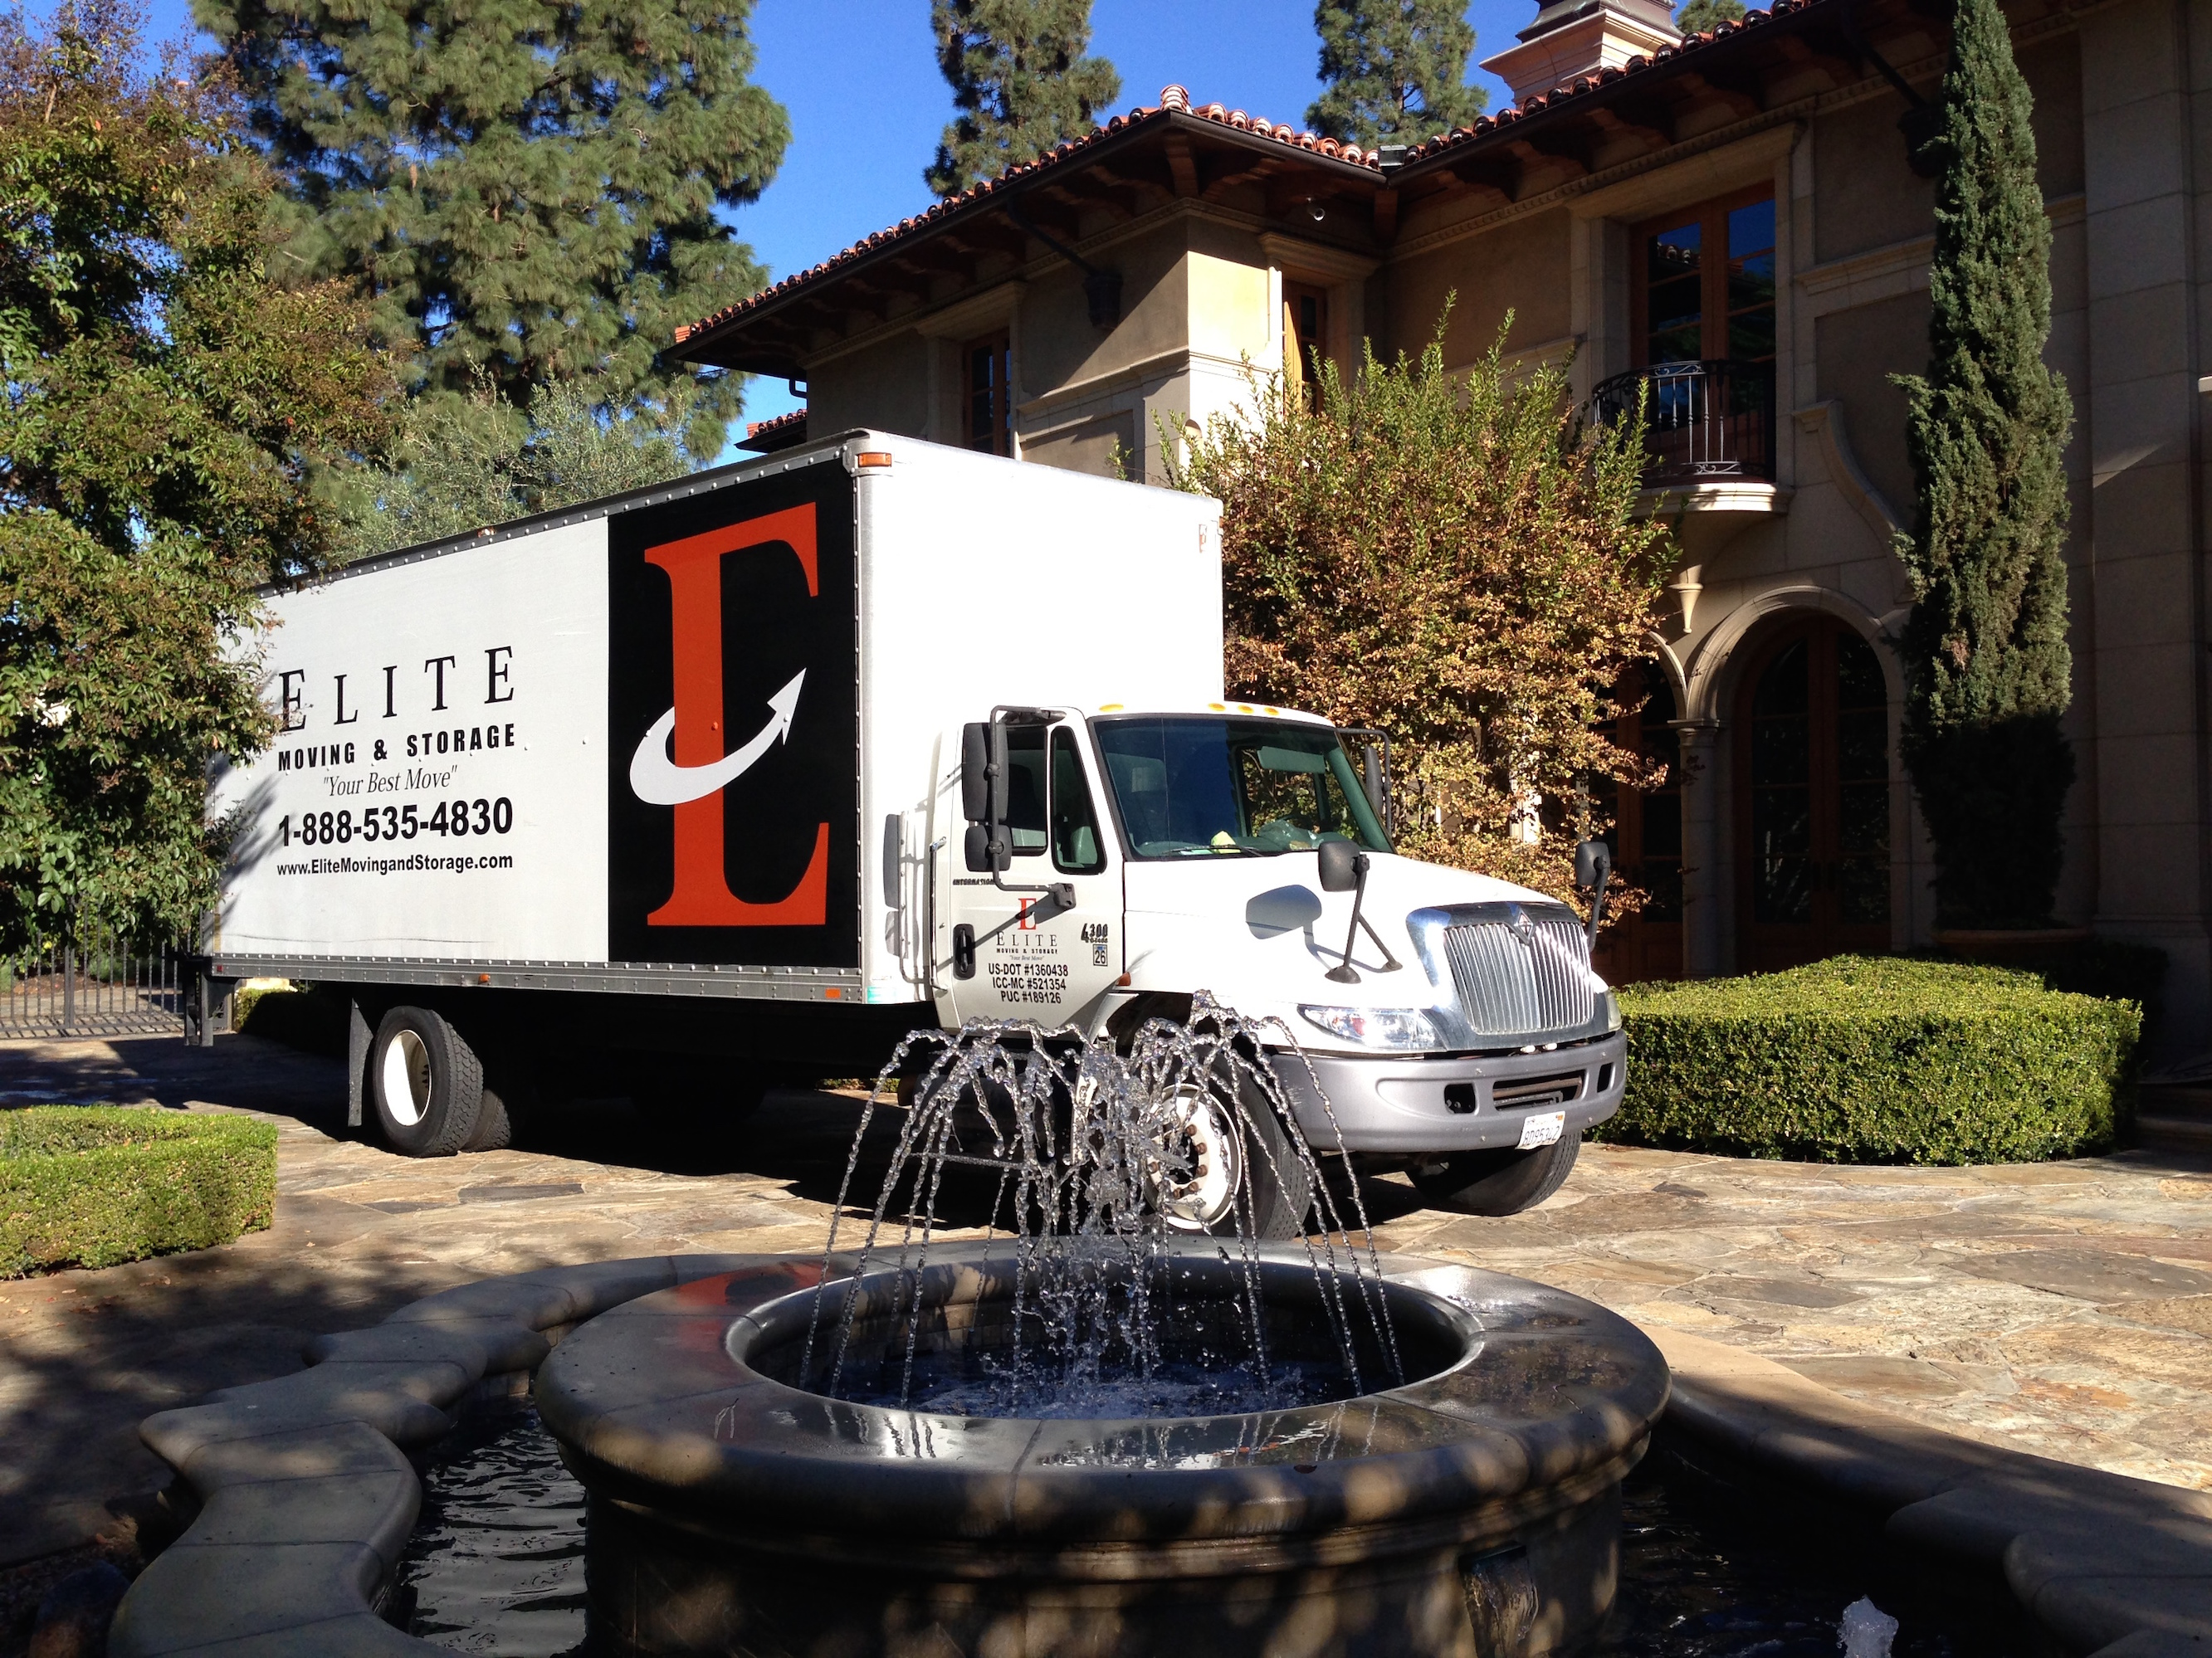 The Best Sherman Oaks Movers   Elite Moving And Storage